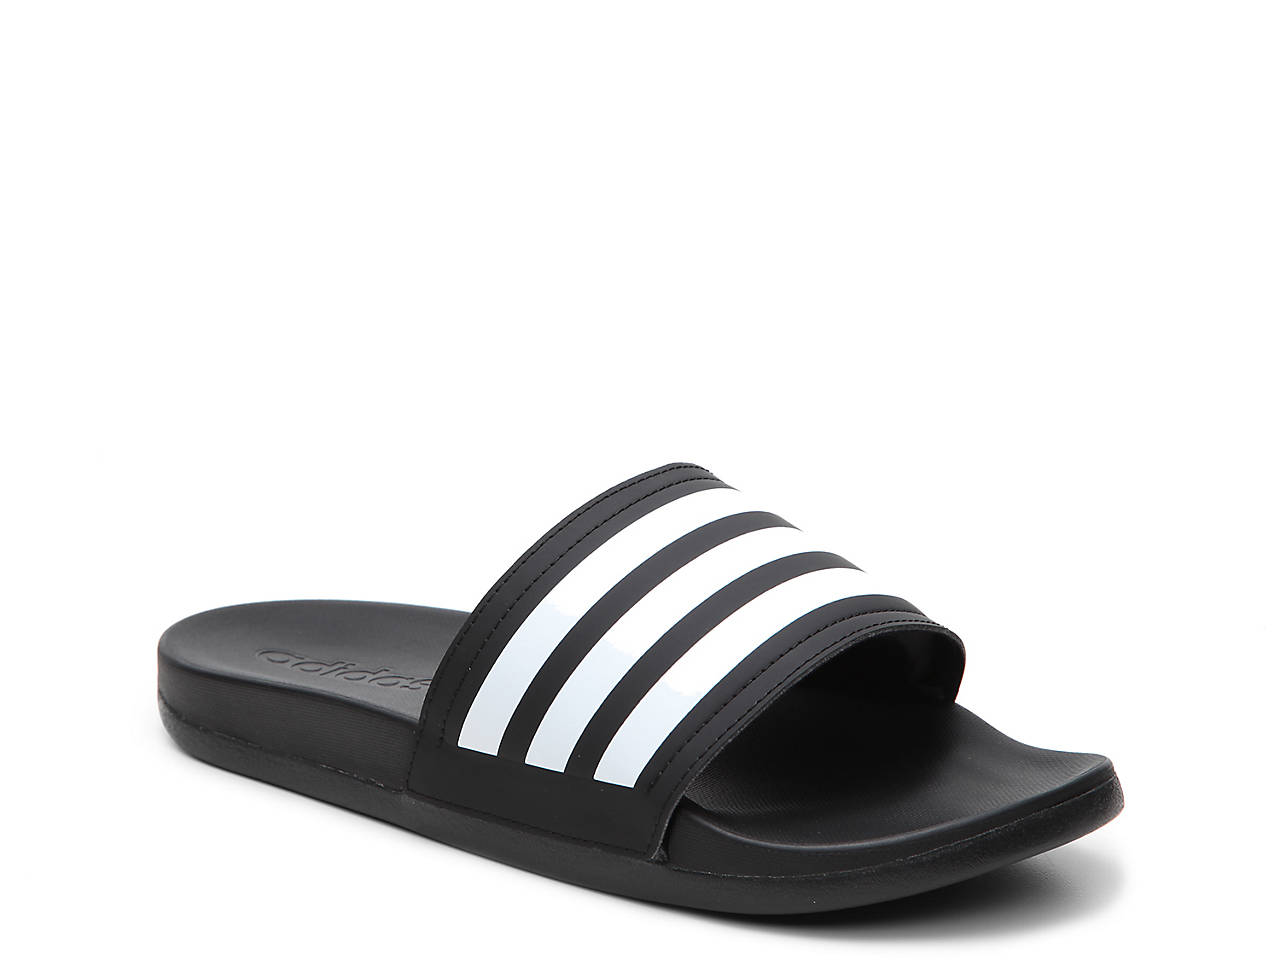 0bab28ac0 adidas Adilette Cloudfoam Ultra Stripes Slide Sandal - Women s ...